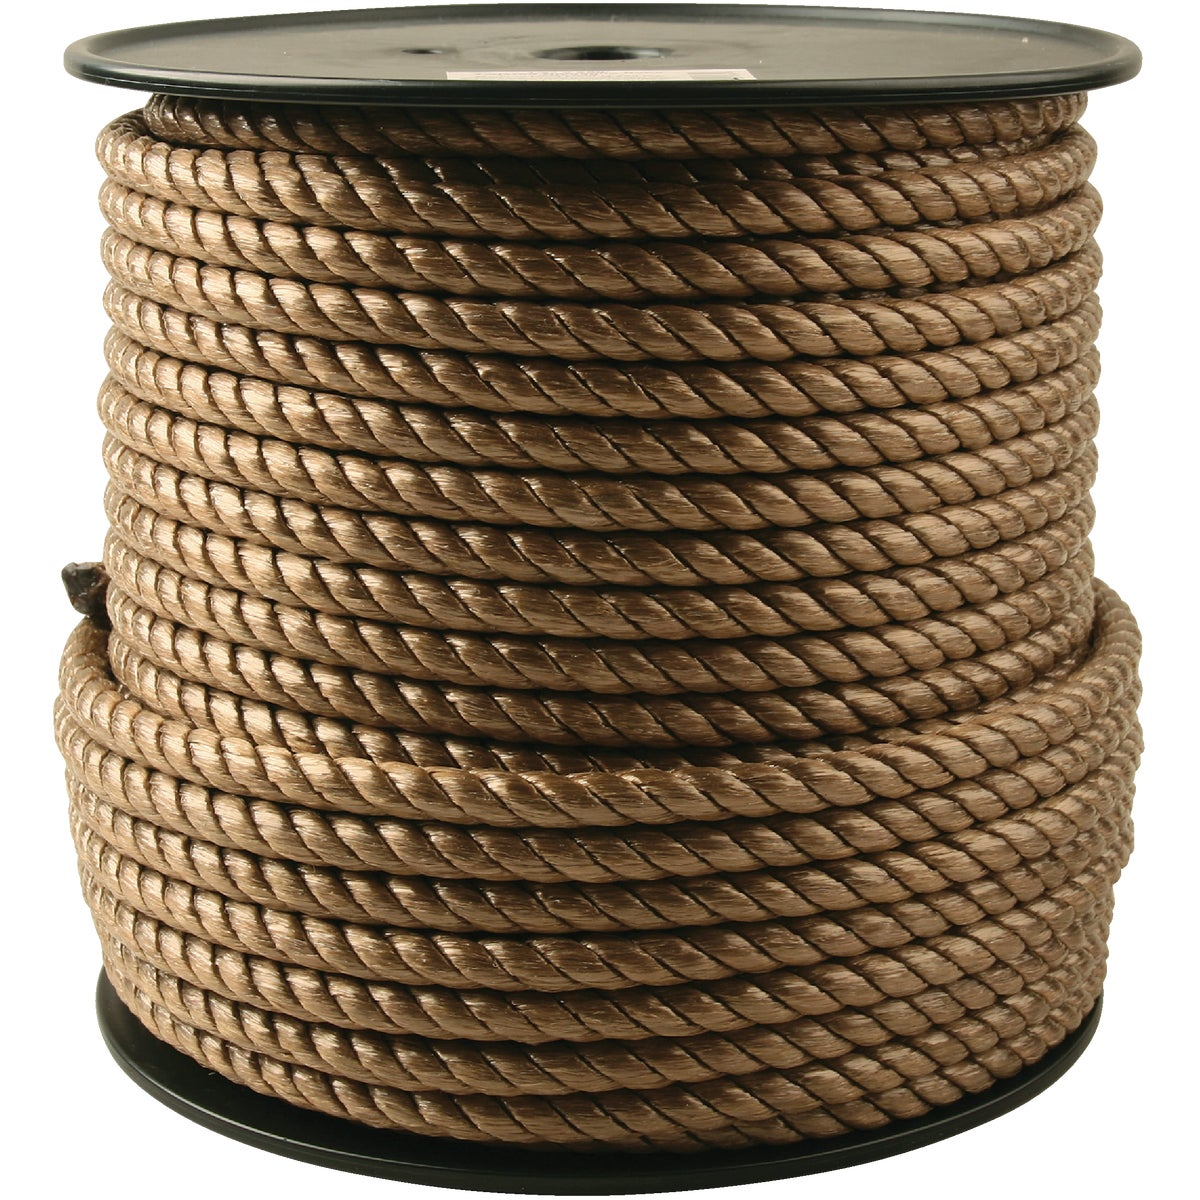 "1/2""X300' UNMANILA ROPE - 707449 by Do it Best"